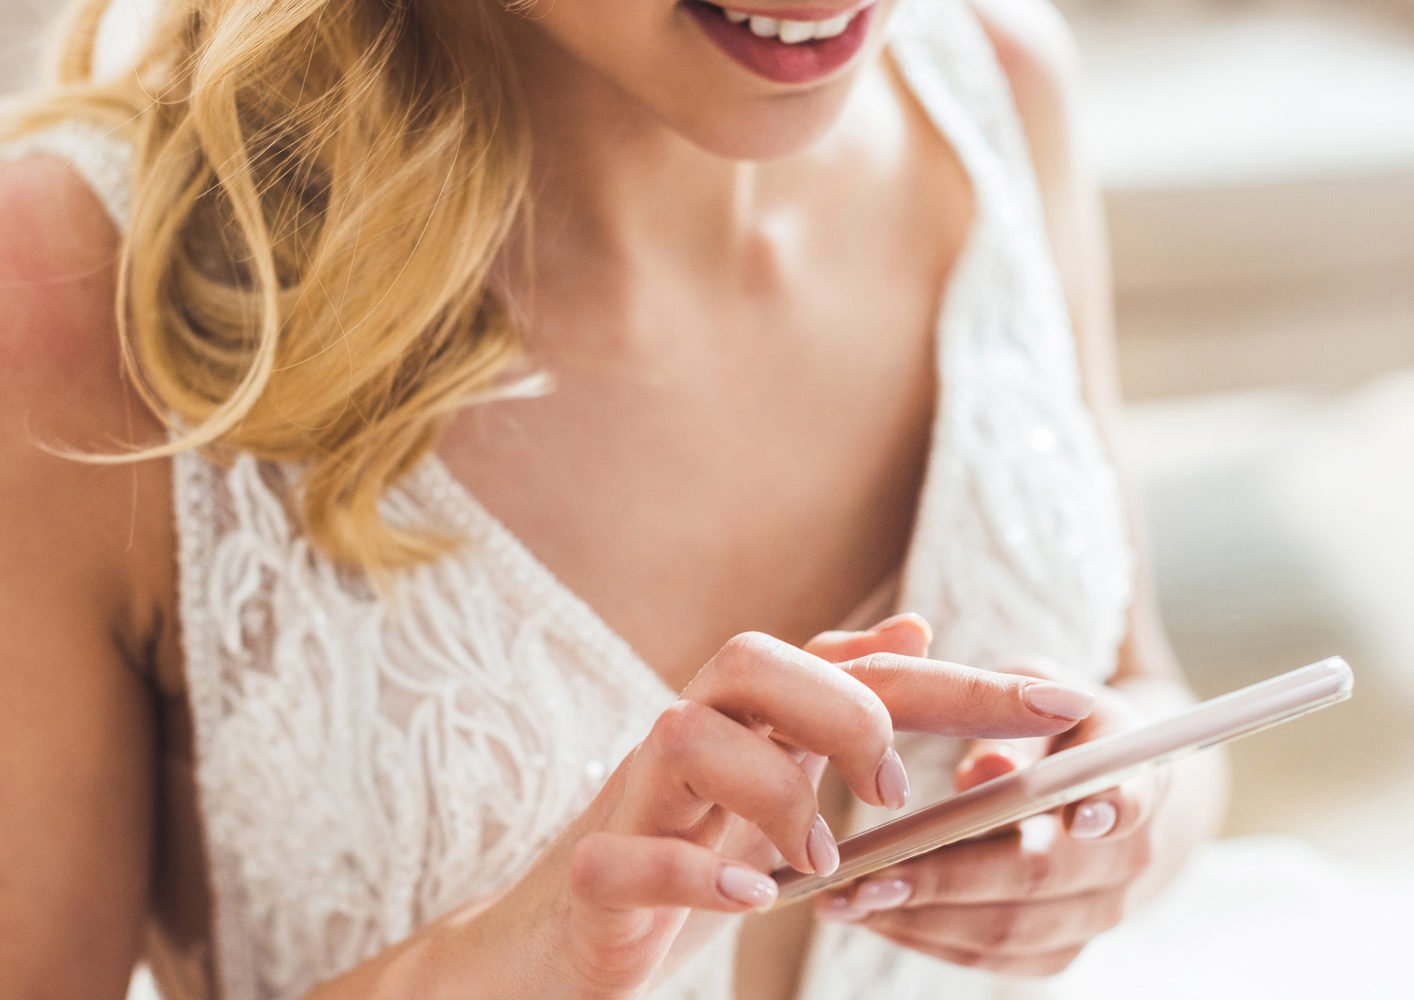 MissNowMrs name change app for brides